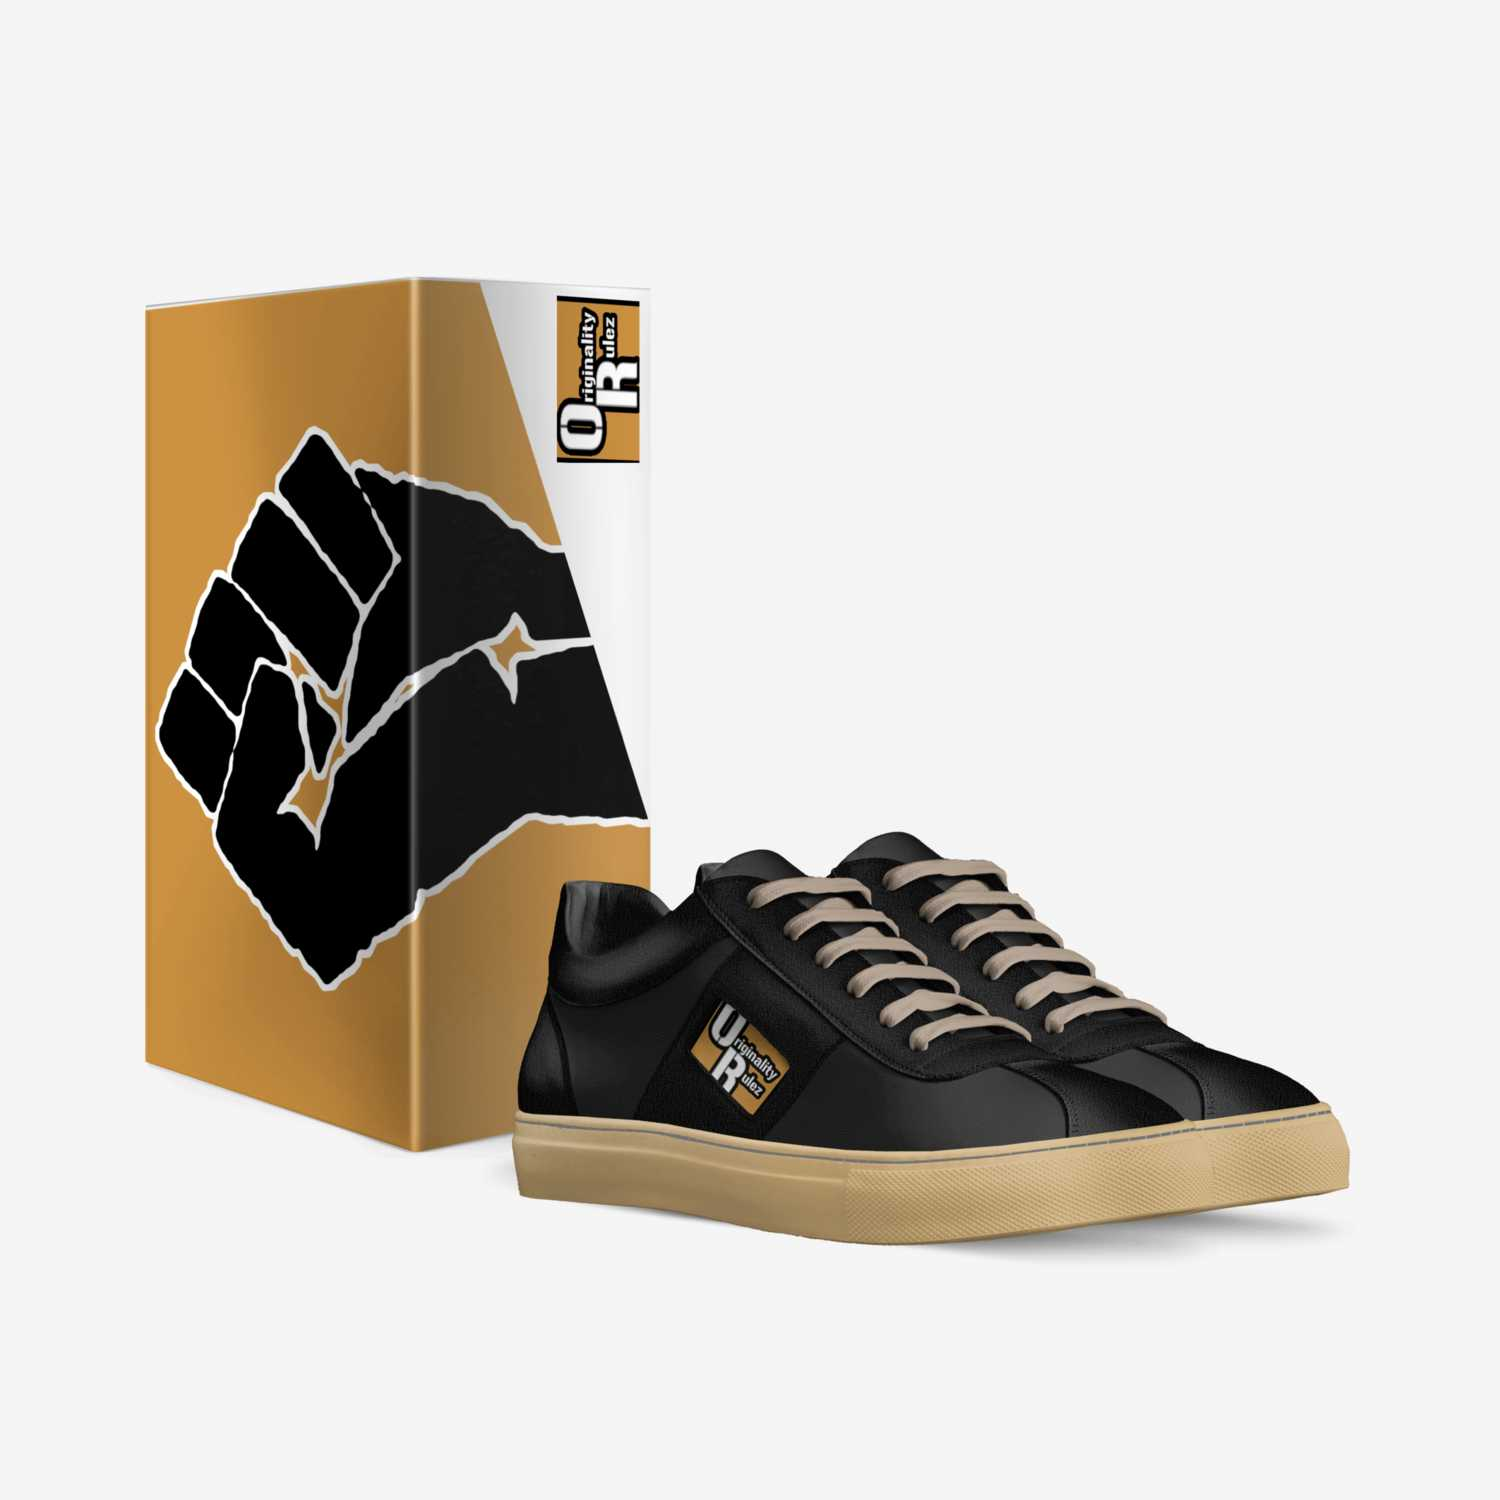 O.R. Originals '20 custom made in Italy shoes by Ric Rulez | Box view